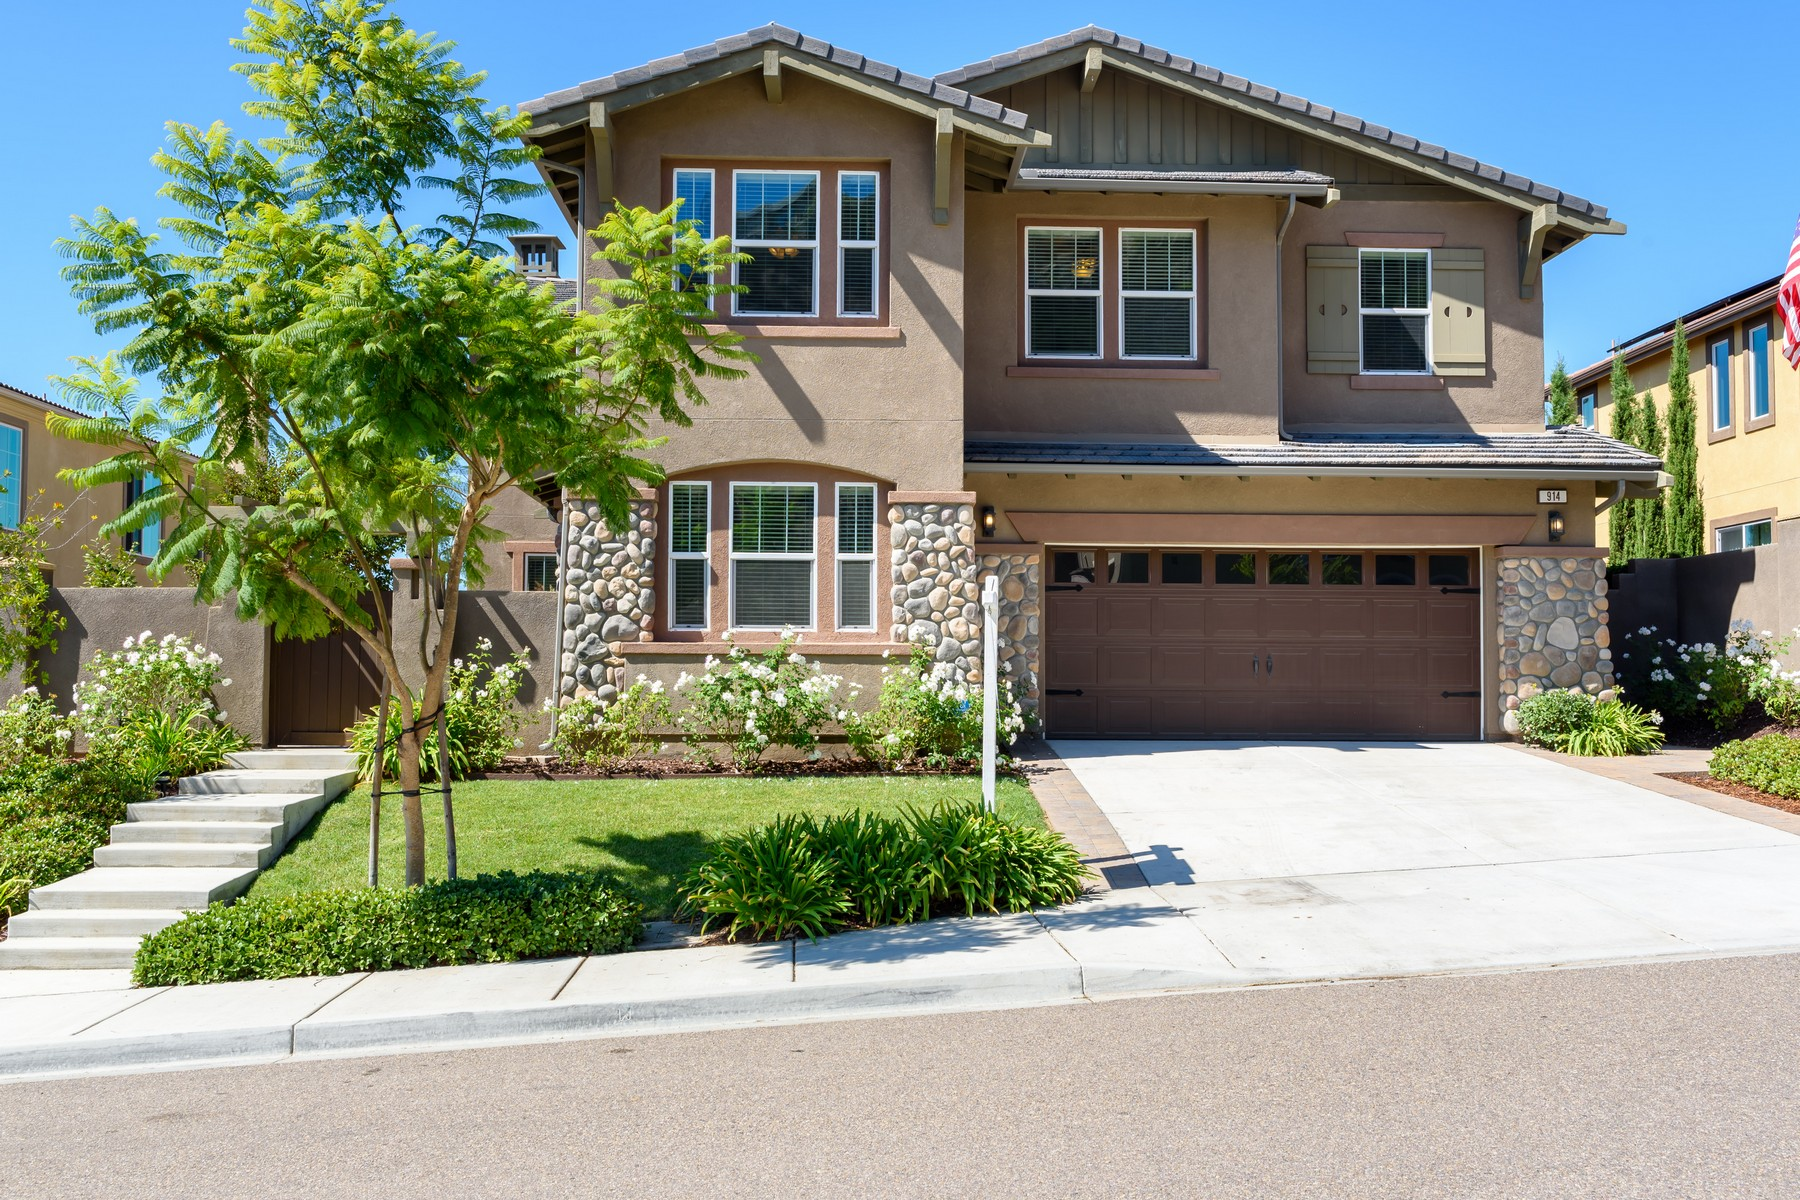 Single Family Homes for Sale at 914 Tucana Drive San Marcos, California 92078 United States